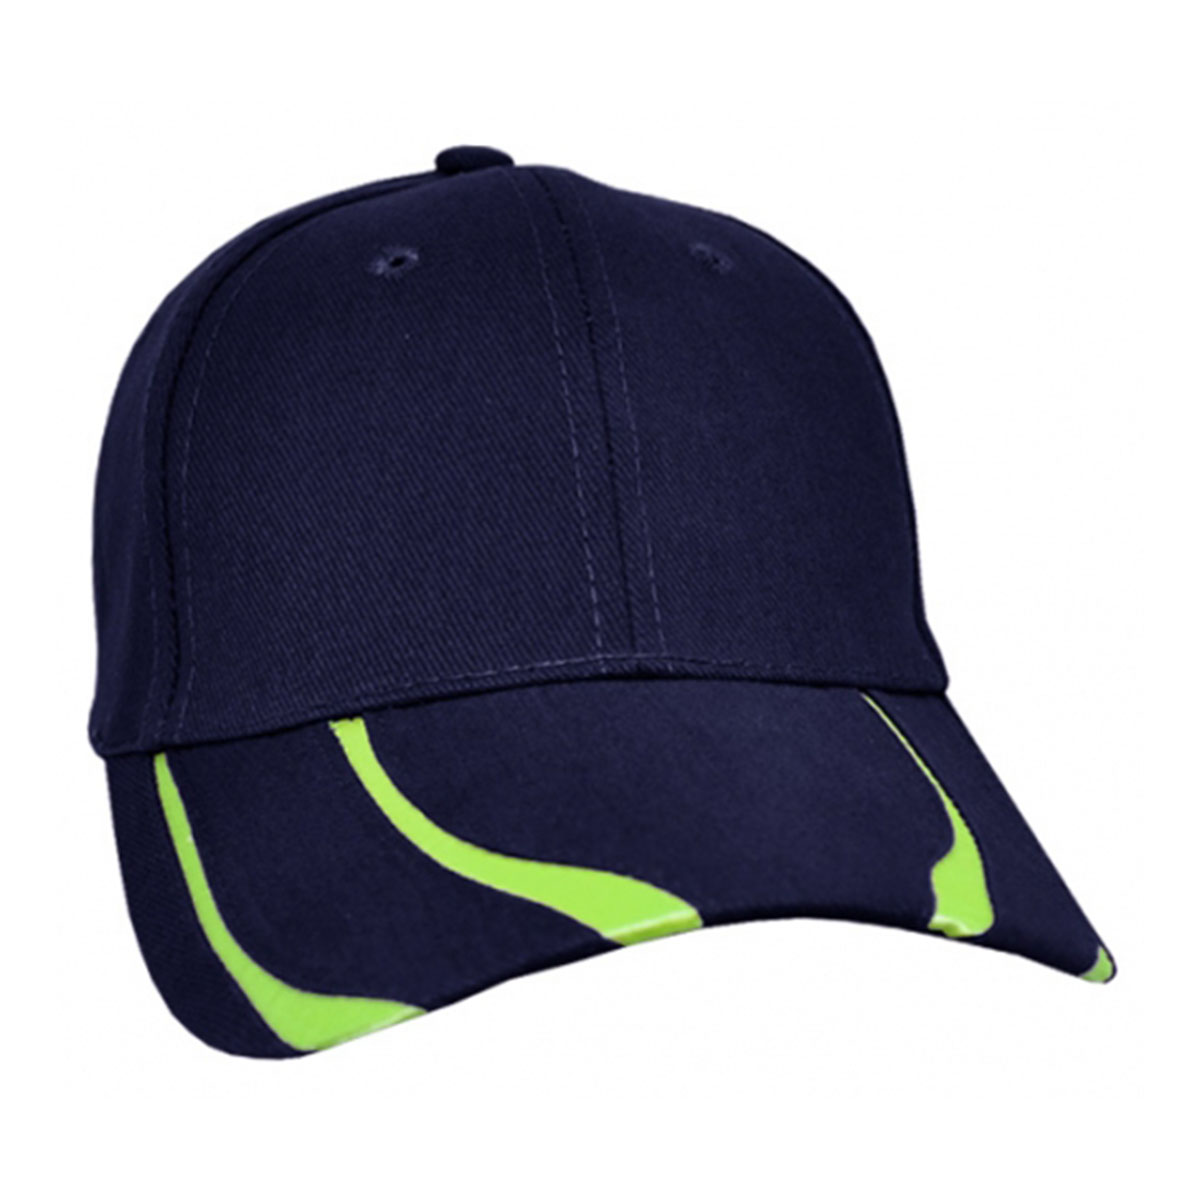 Striker Cap-Navy / Lime